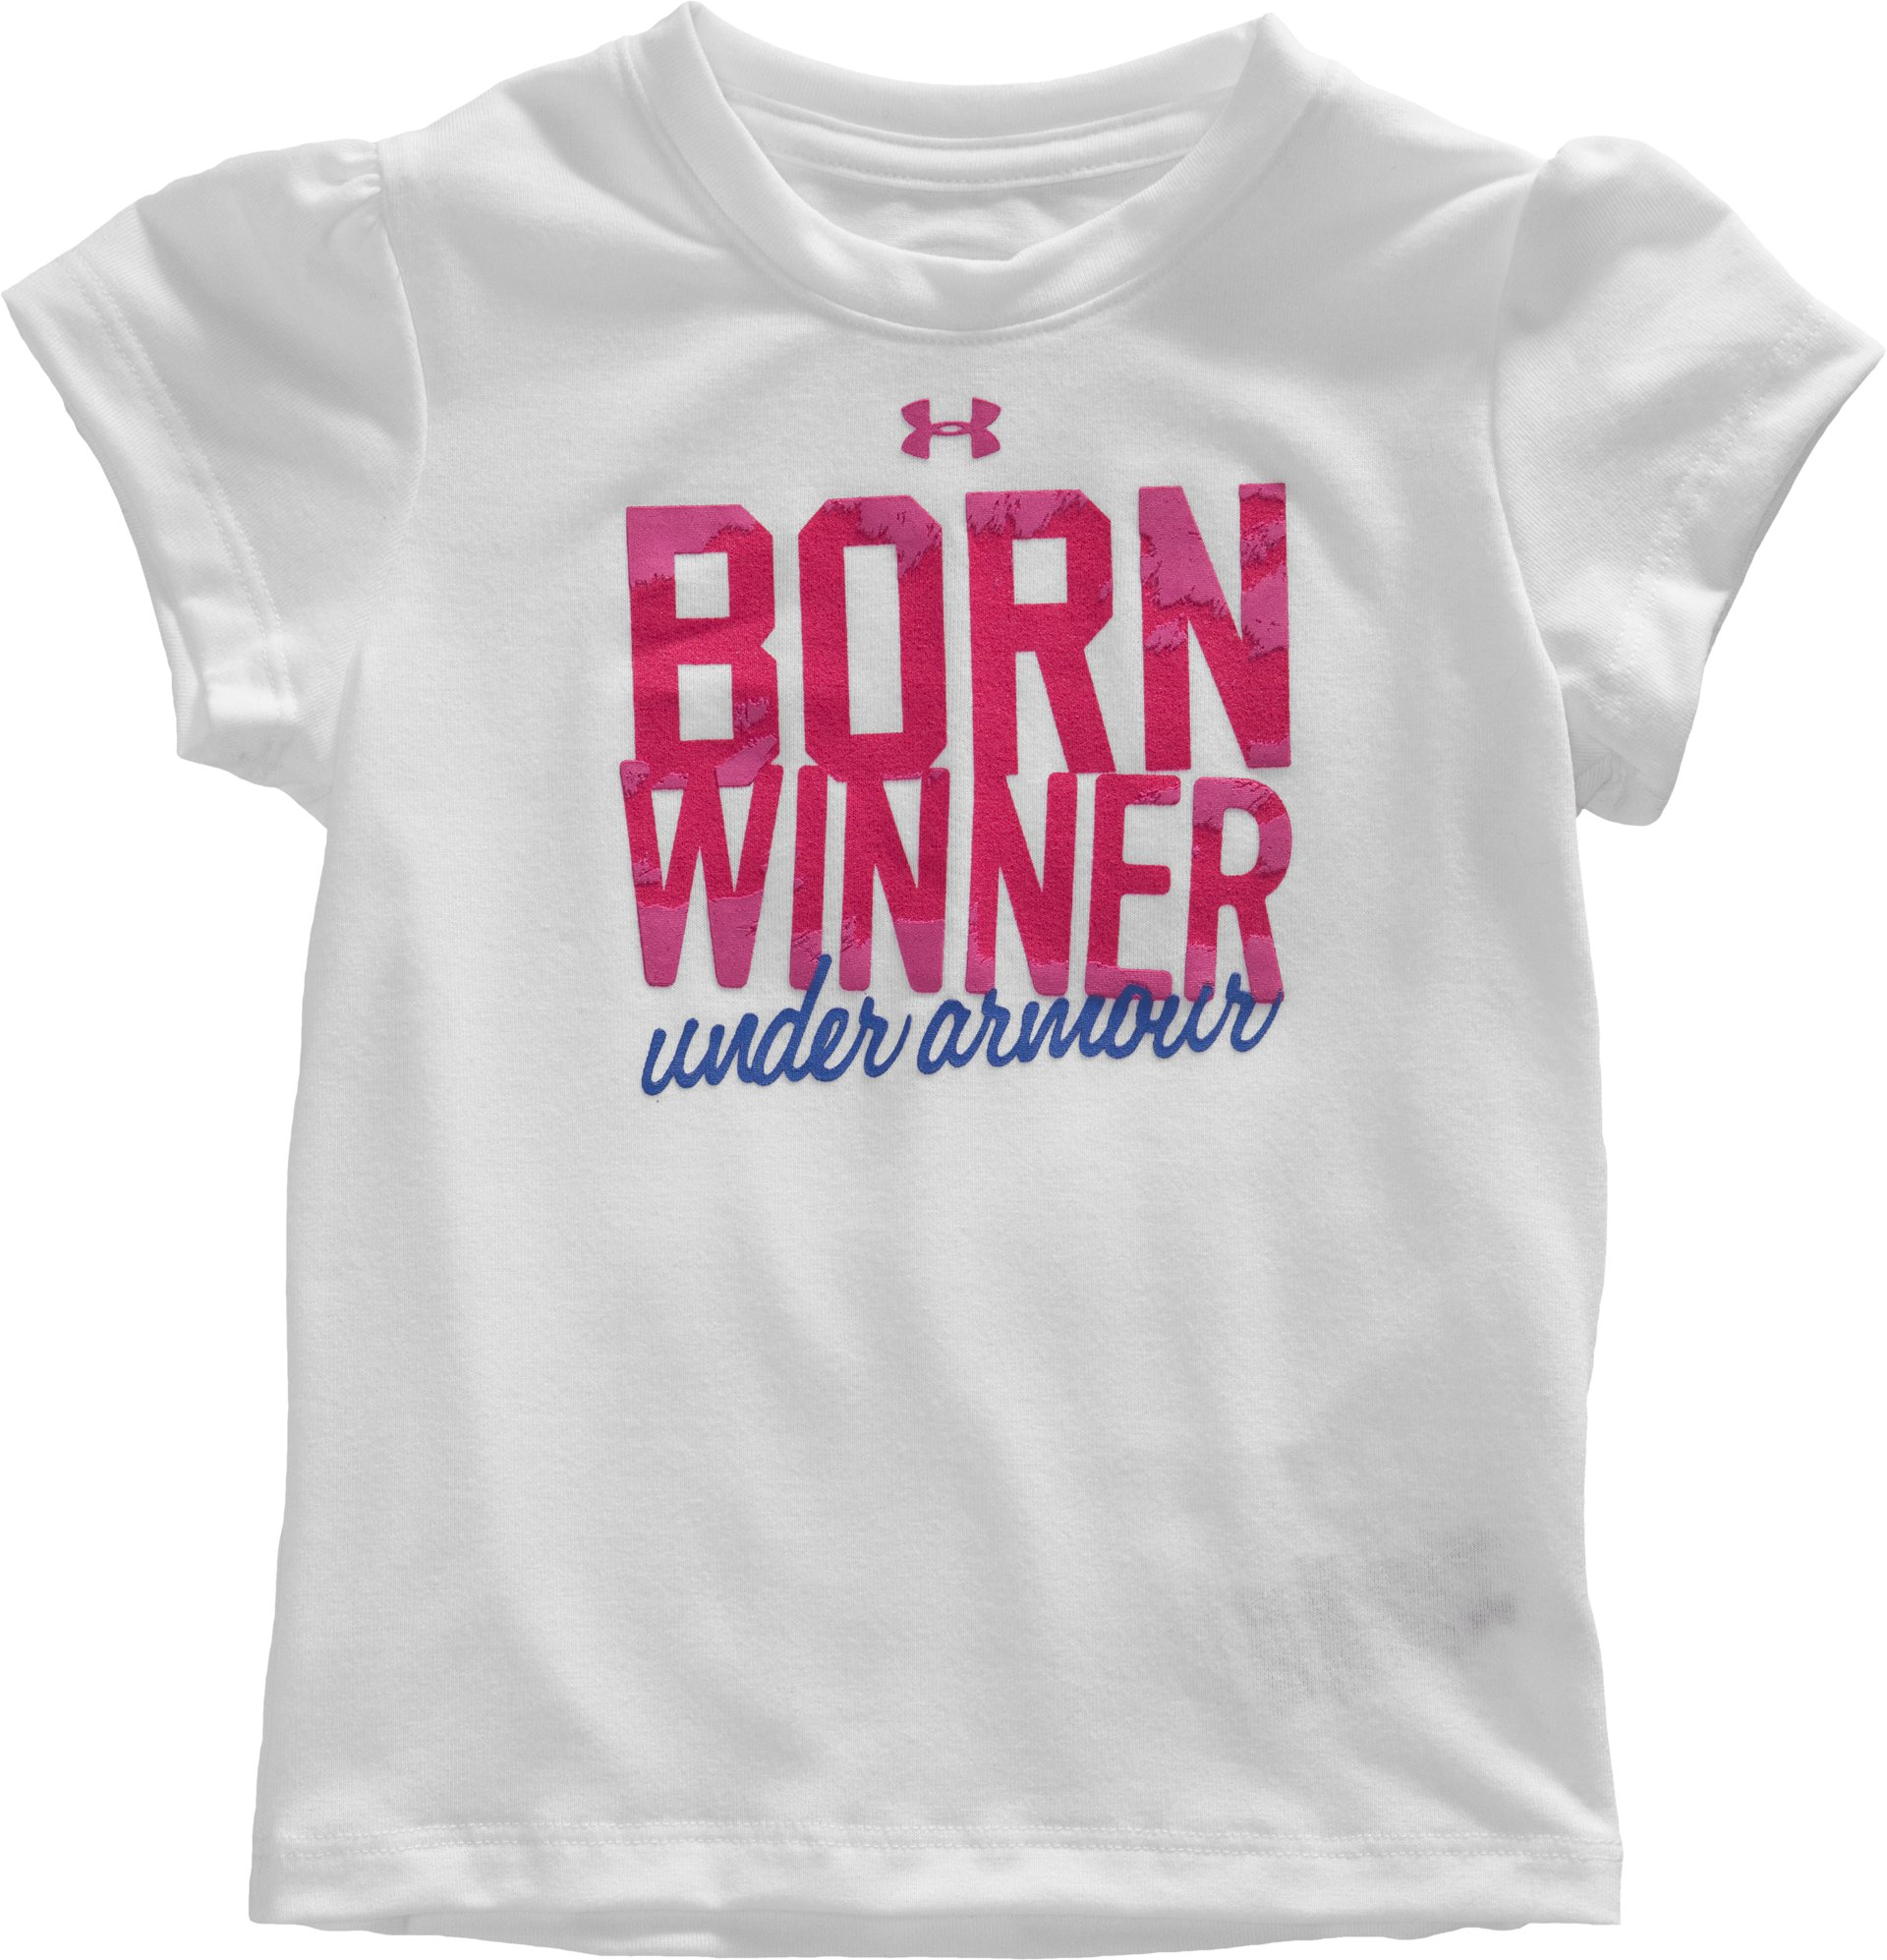 Girls' 4-7 Born Winner T-Shirt, White, zoomed image